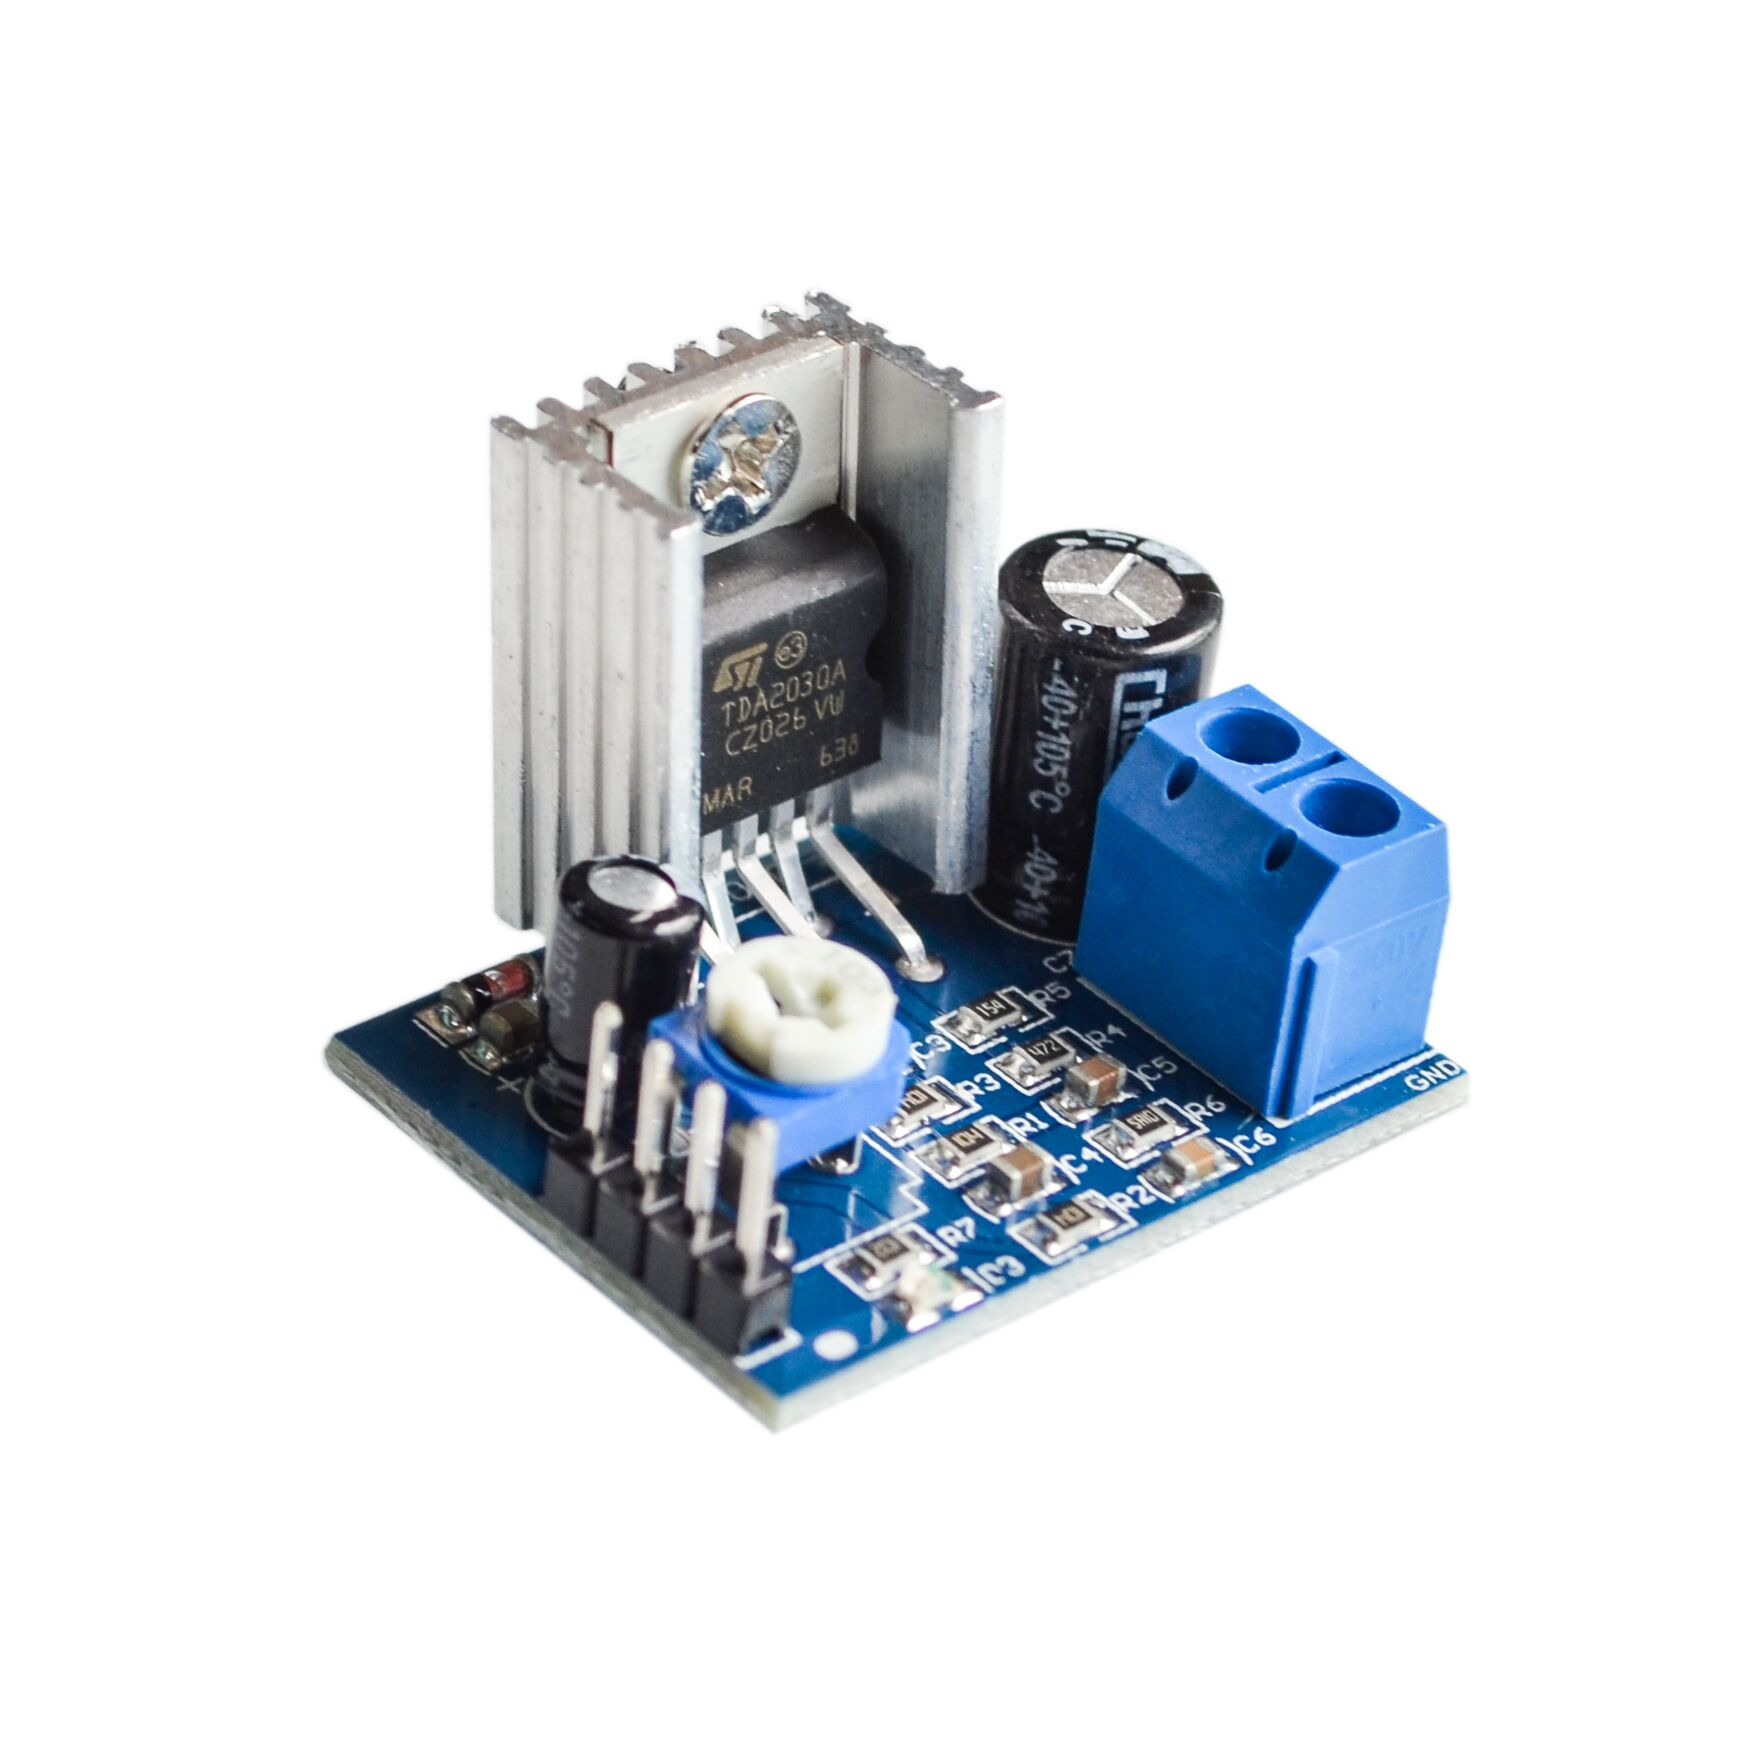 Buy Tda2030 Amplifier Board And Get Free Shipping On 30w Stereo Power Based Tda 1521